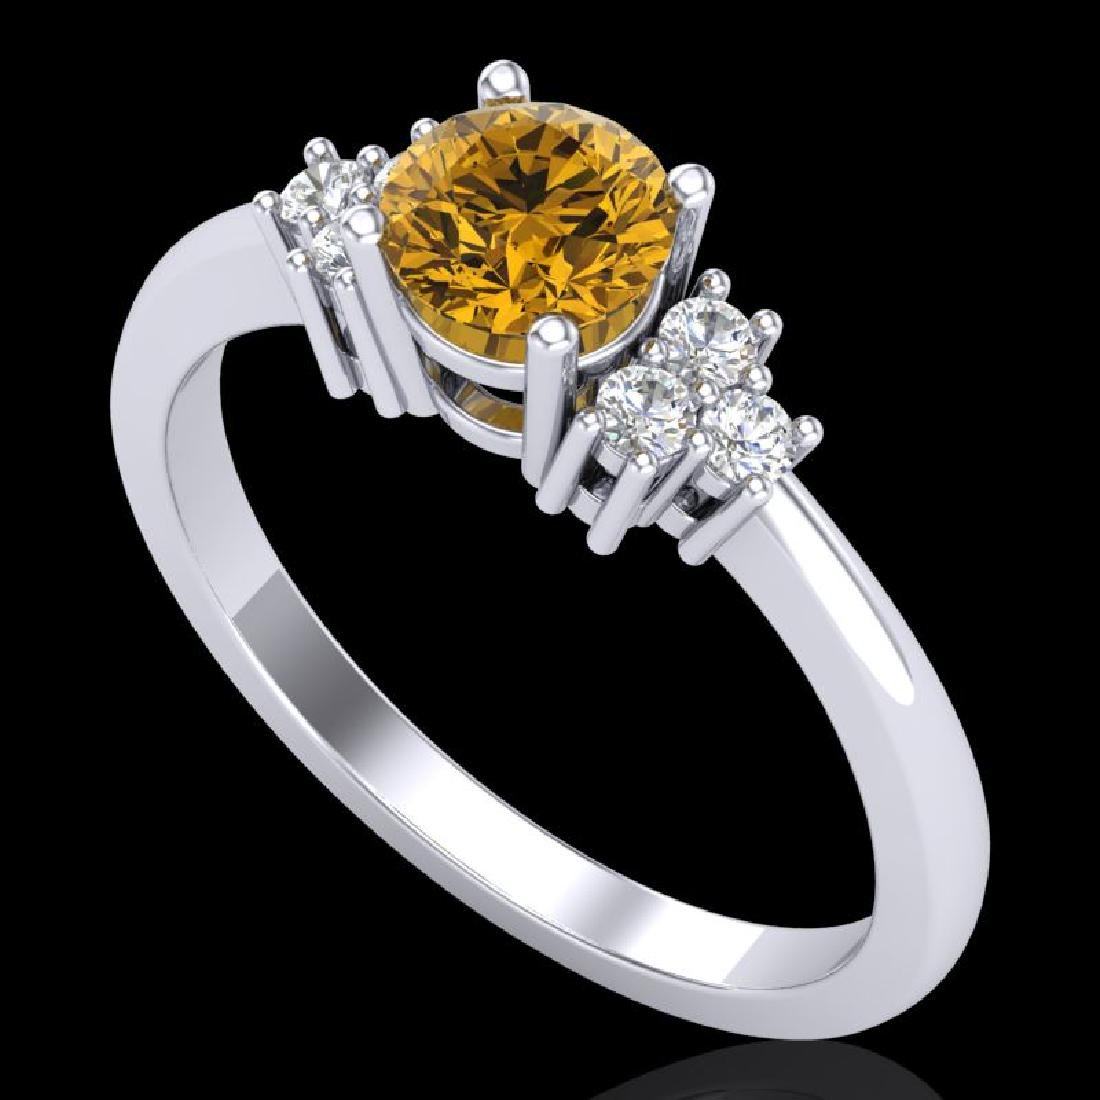 0.75 CTW Intense Fancy Yellow Diamond Engagement